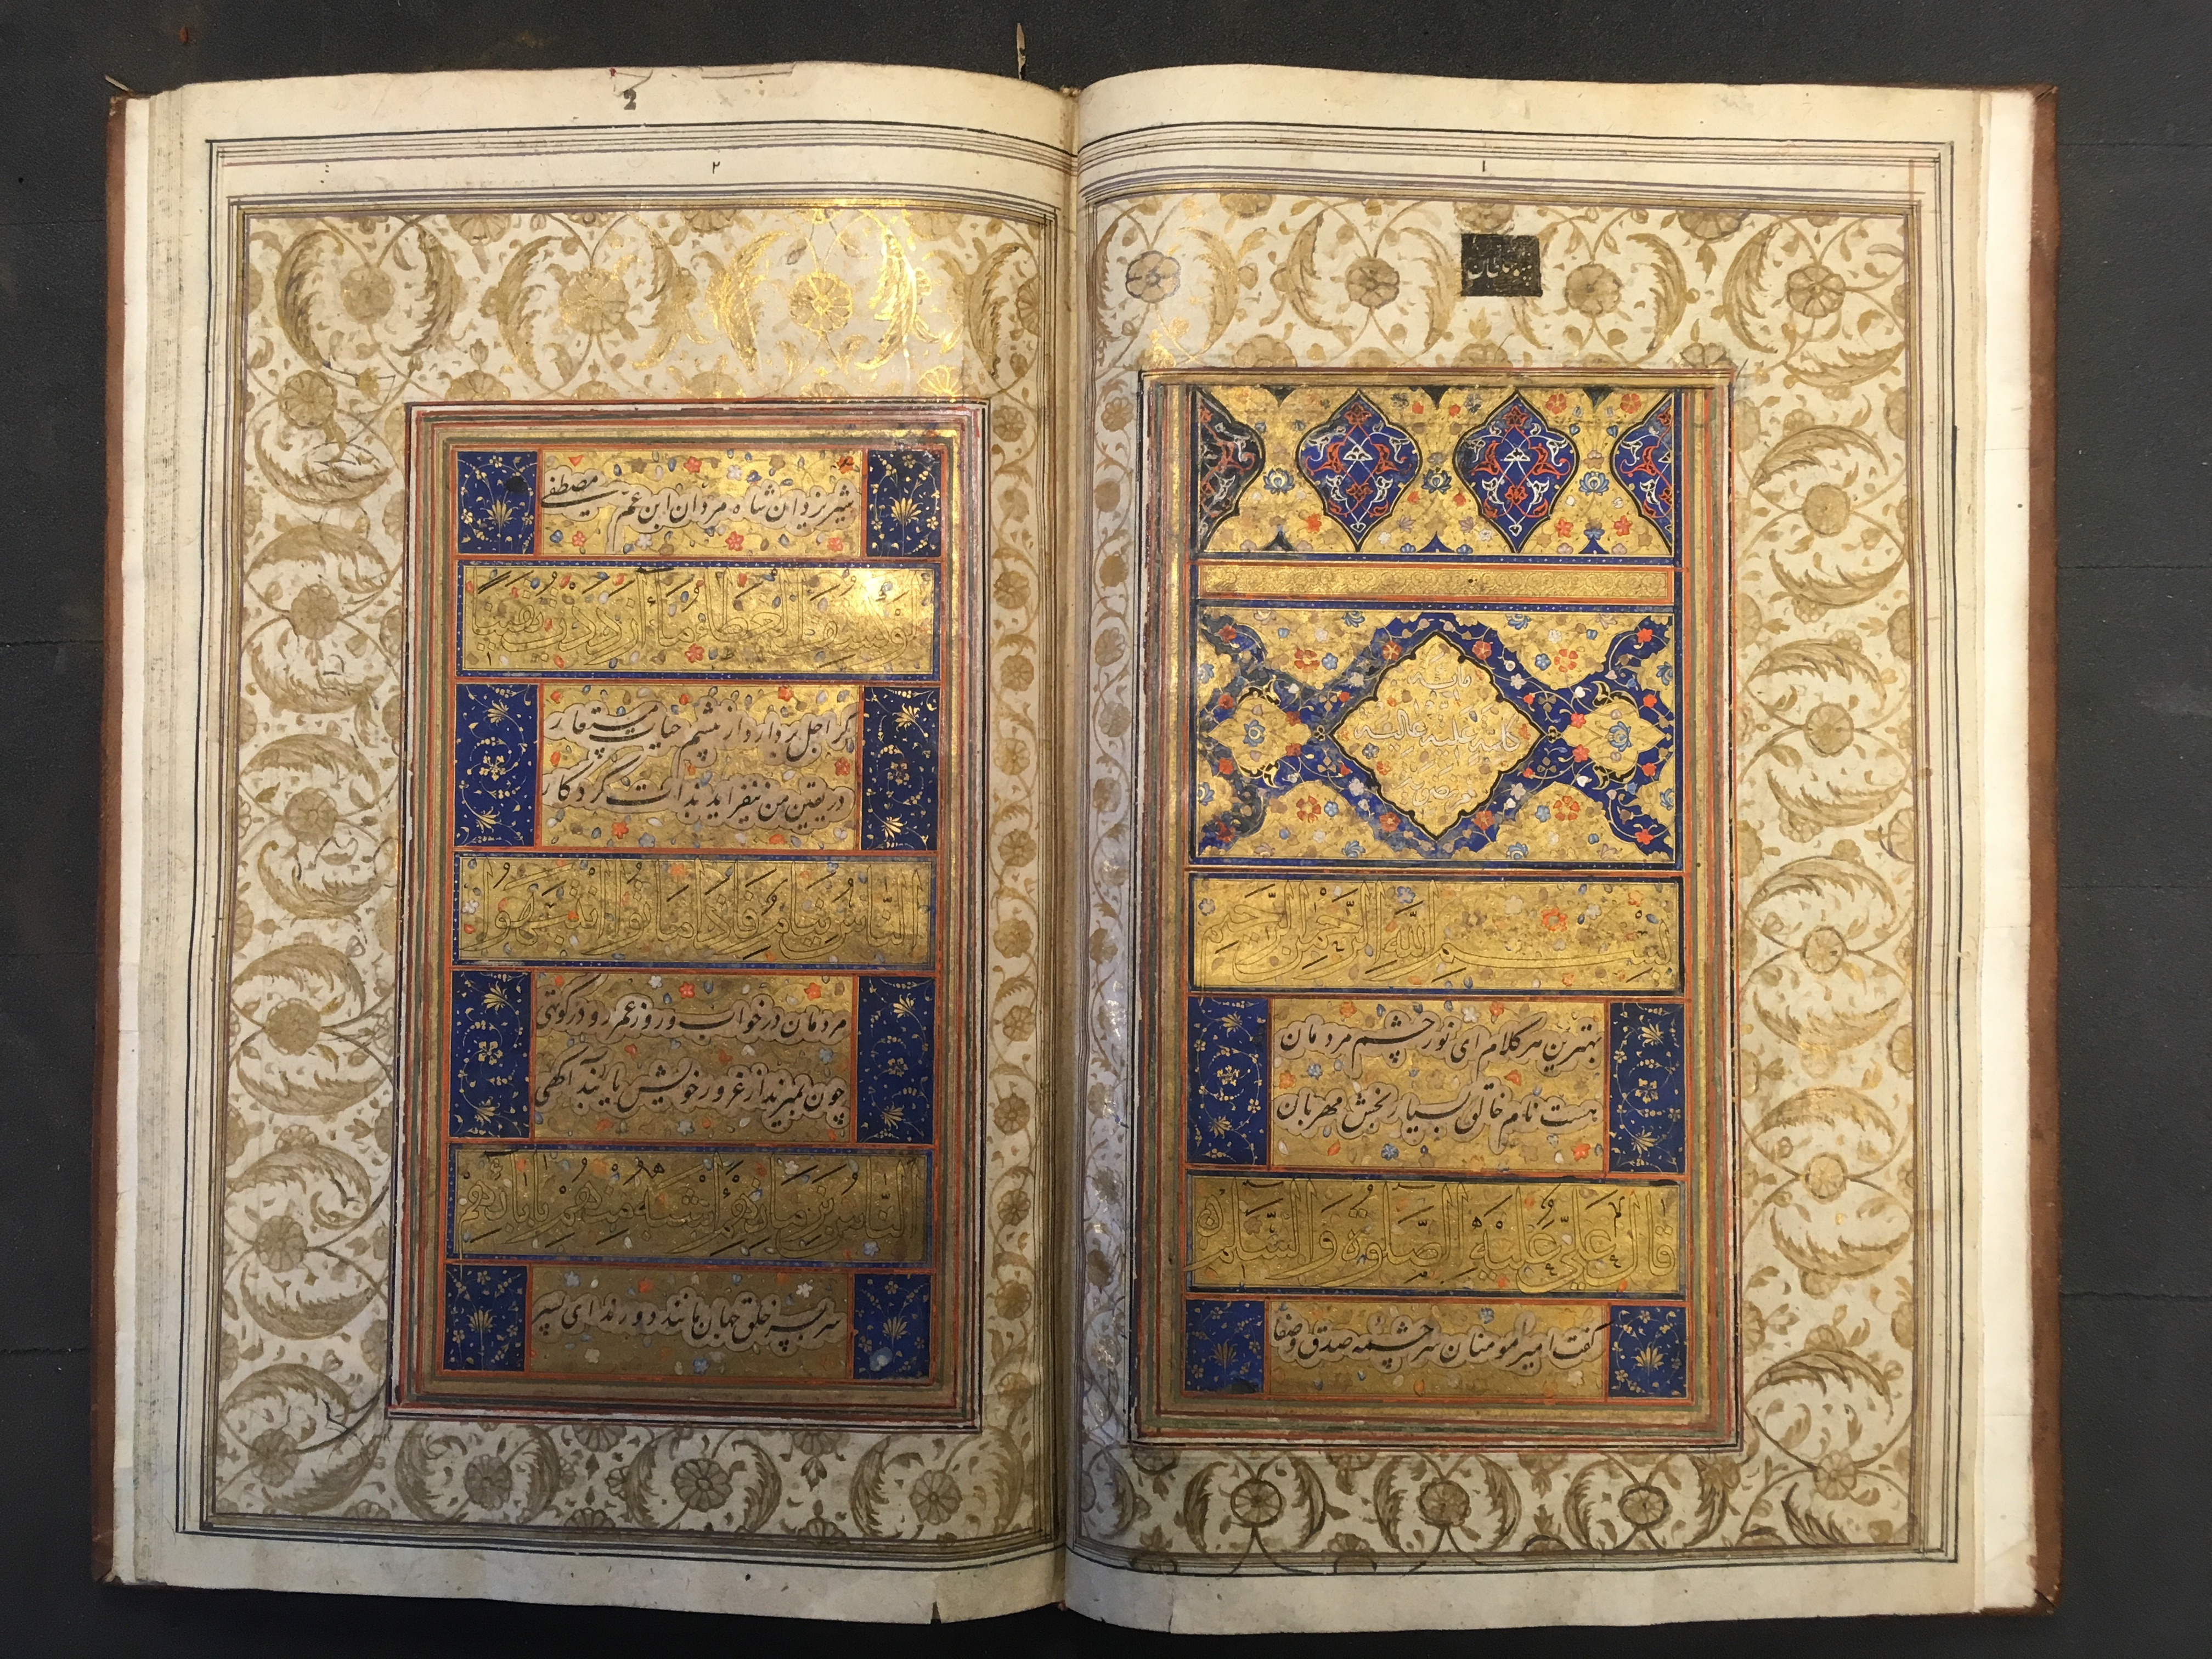 Tipu Sultan: Royal seals on old books show his fondness for